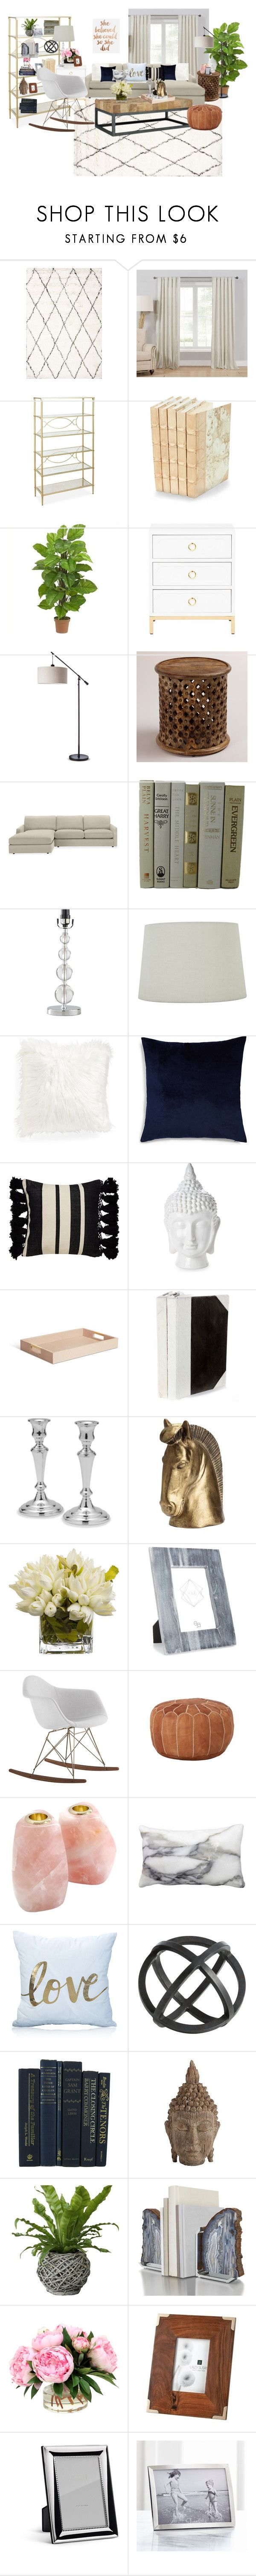 Living Room Board by archaeology25 on Polyvore featuring interior, interiors, interior design, home, home decor, interior decorating, EASTON, Jayson Home, Cost Plus World Market and Threshold